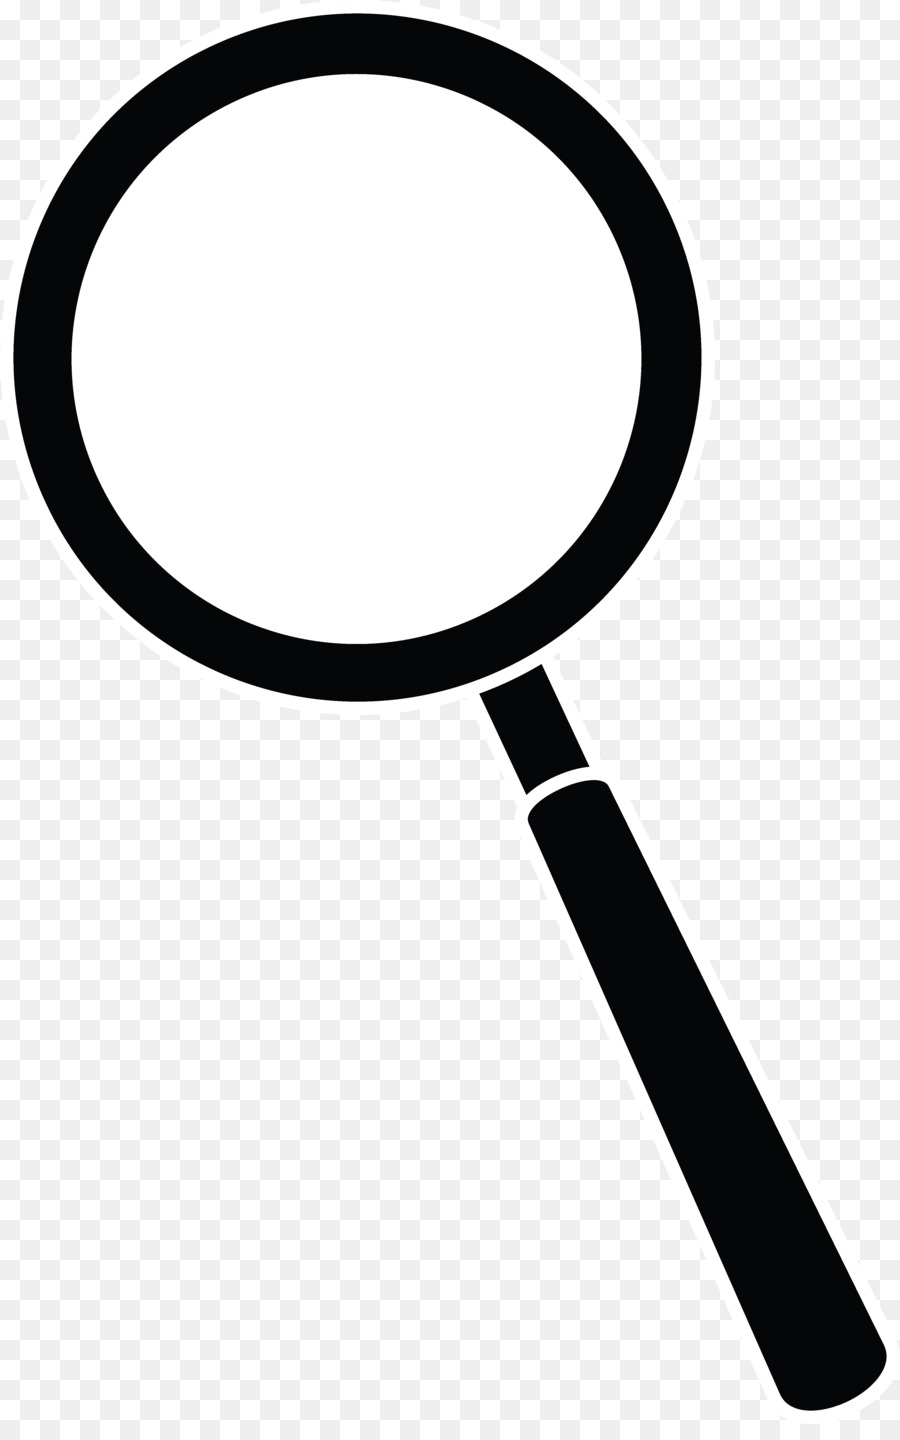 Magnifying Glass Clipart Png Download 4166 6590 Free Transparent Magnifying Glass Png Download Cleanpng Kisspng